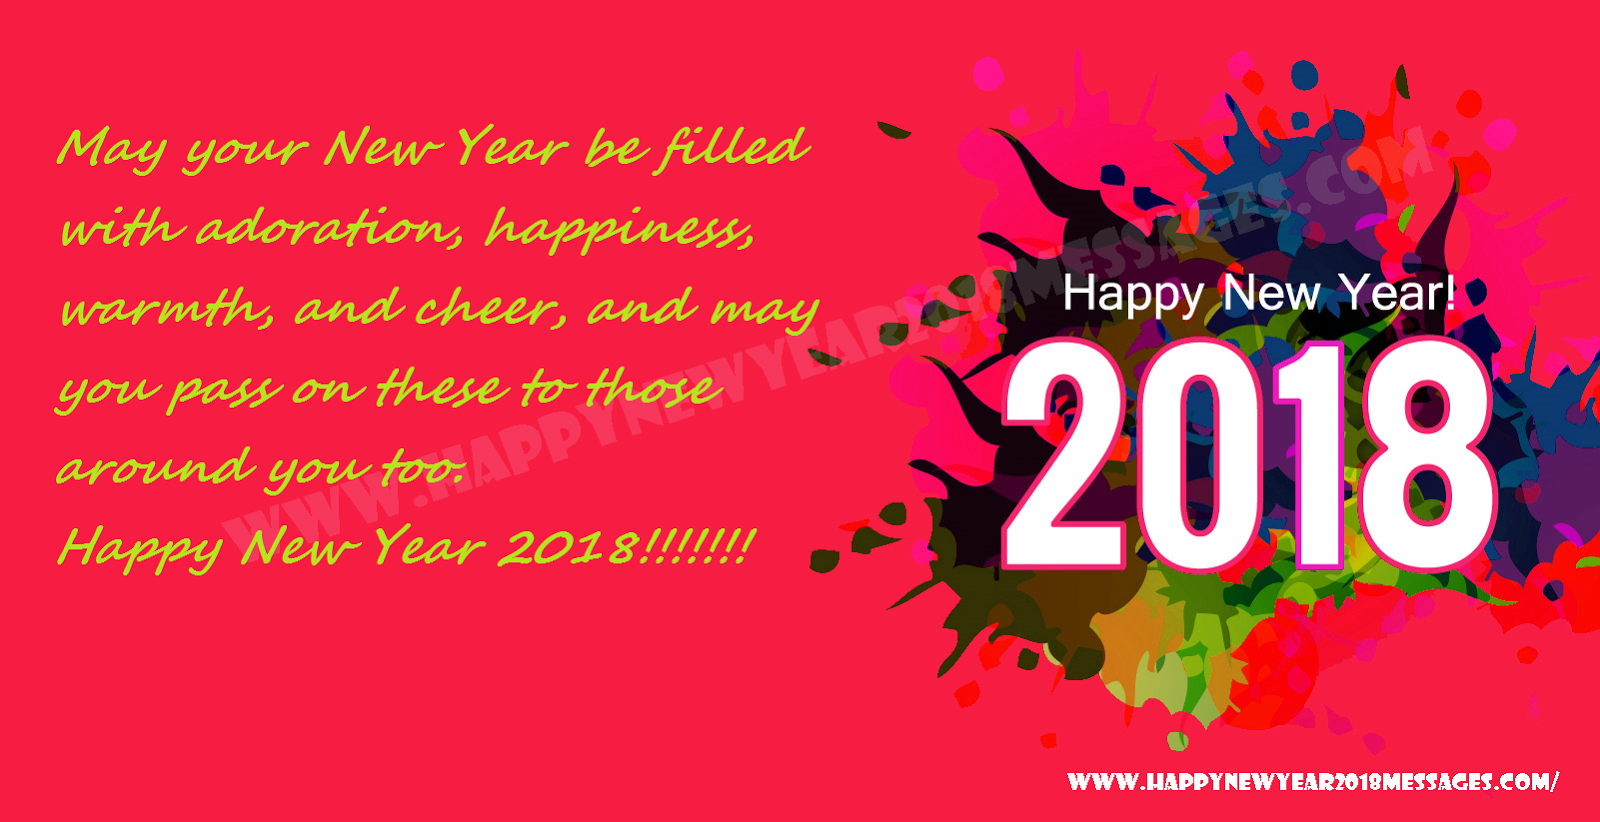 Happy new year greetings words 2018 sentiments good wishes cards happy new year greetings words 2018 sentiments good wishes cards m4hsunfo